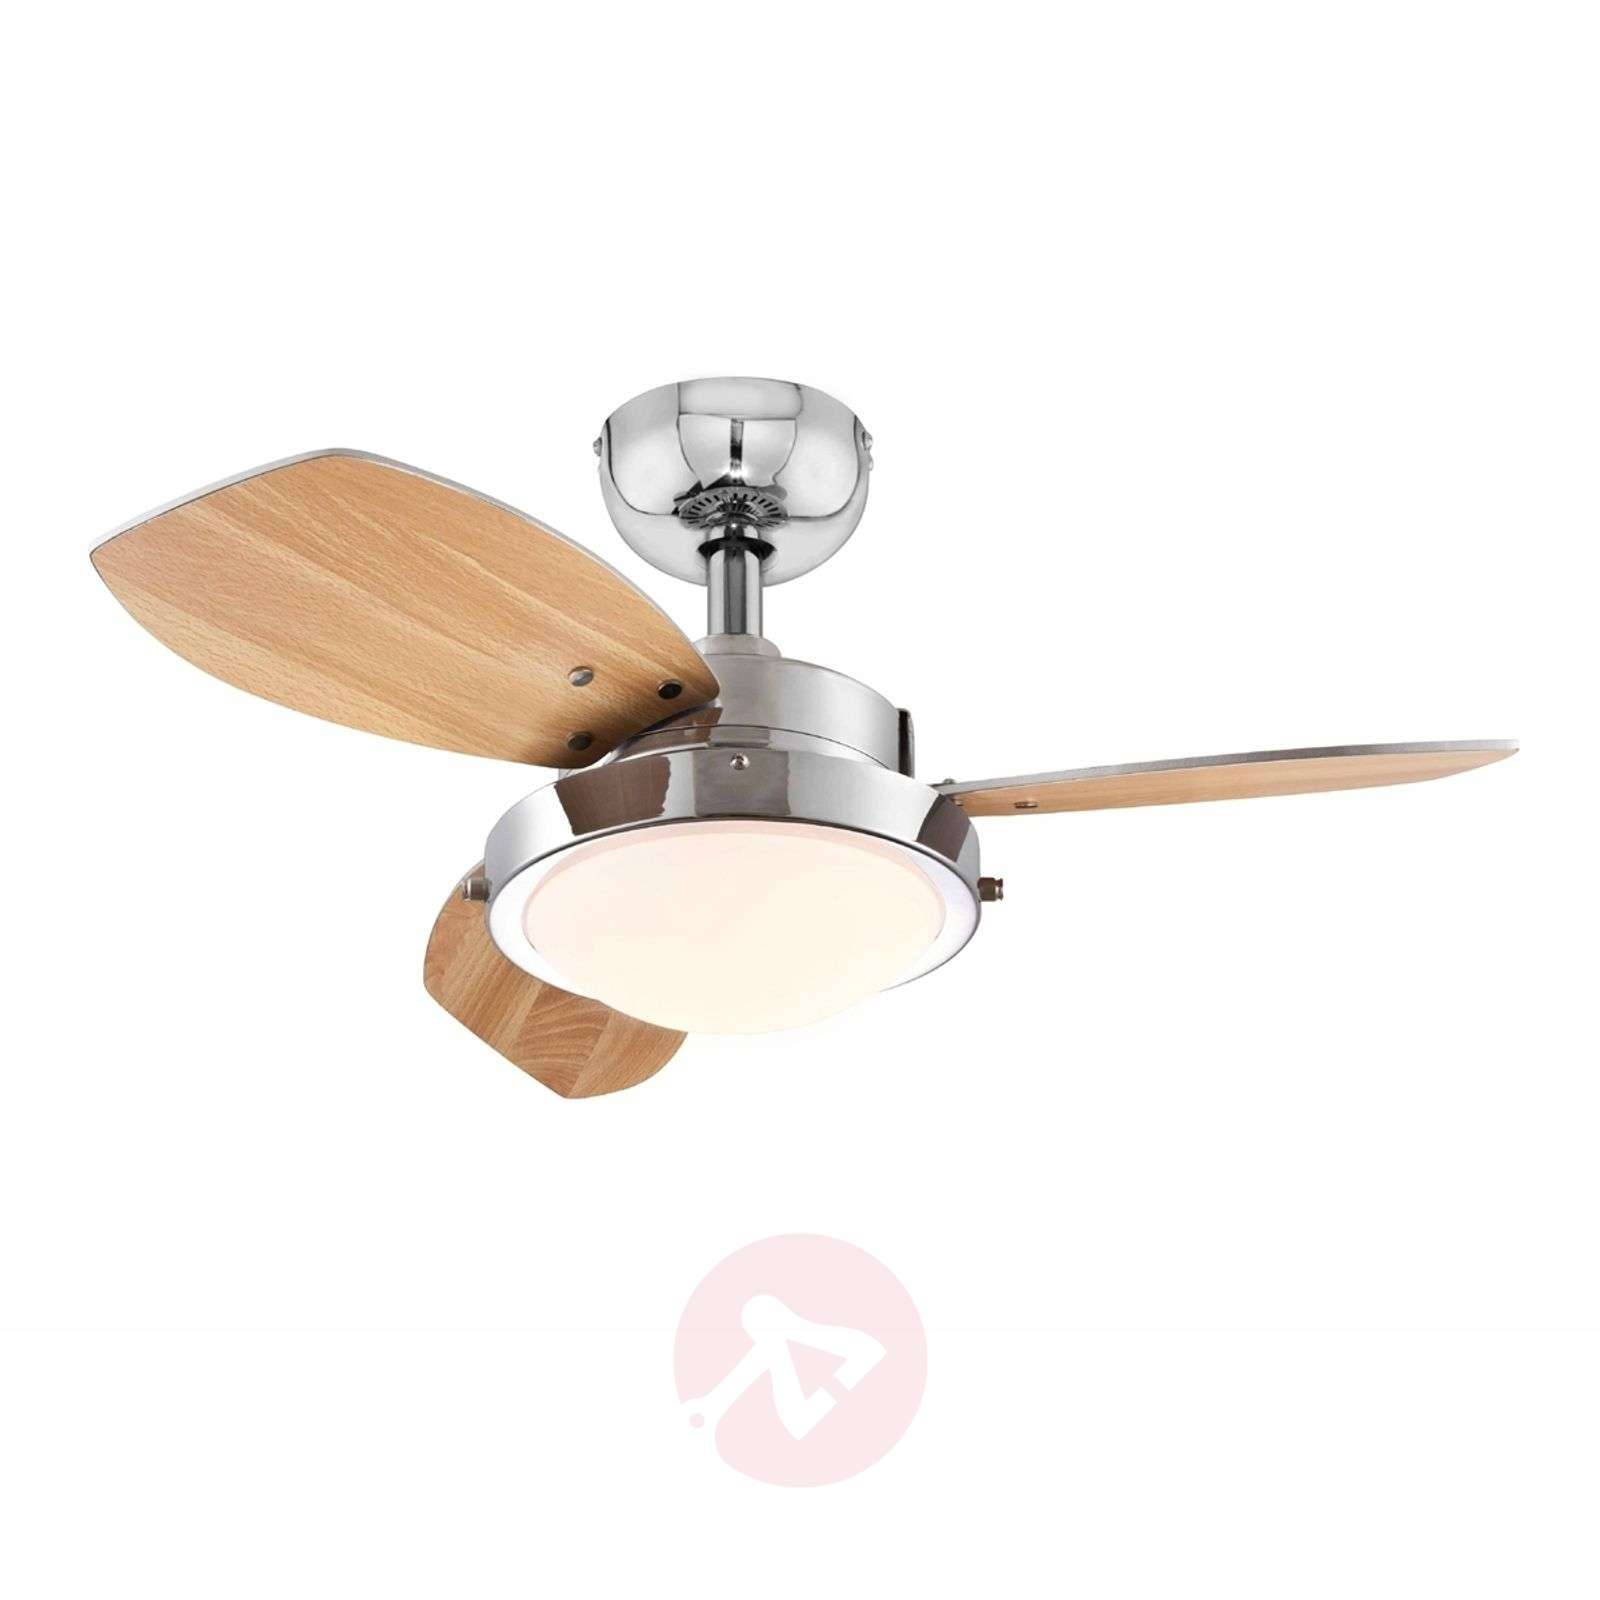 Wenge ceiling fan with halogen lamp wenge ceiling fan with halogen lamp 9602233 02 mozeypictures Choice Image